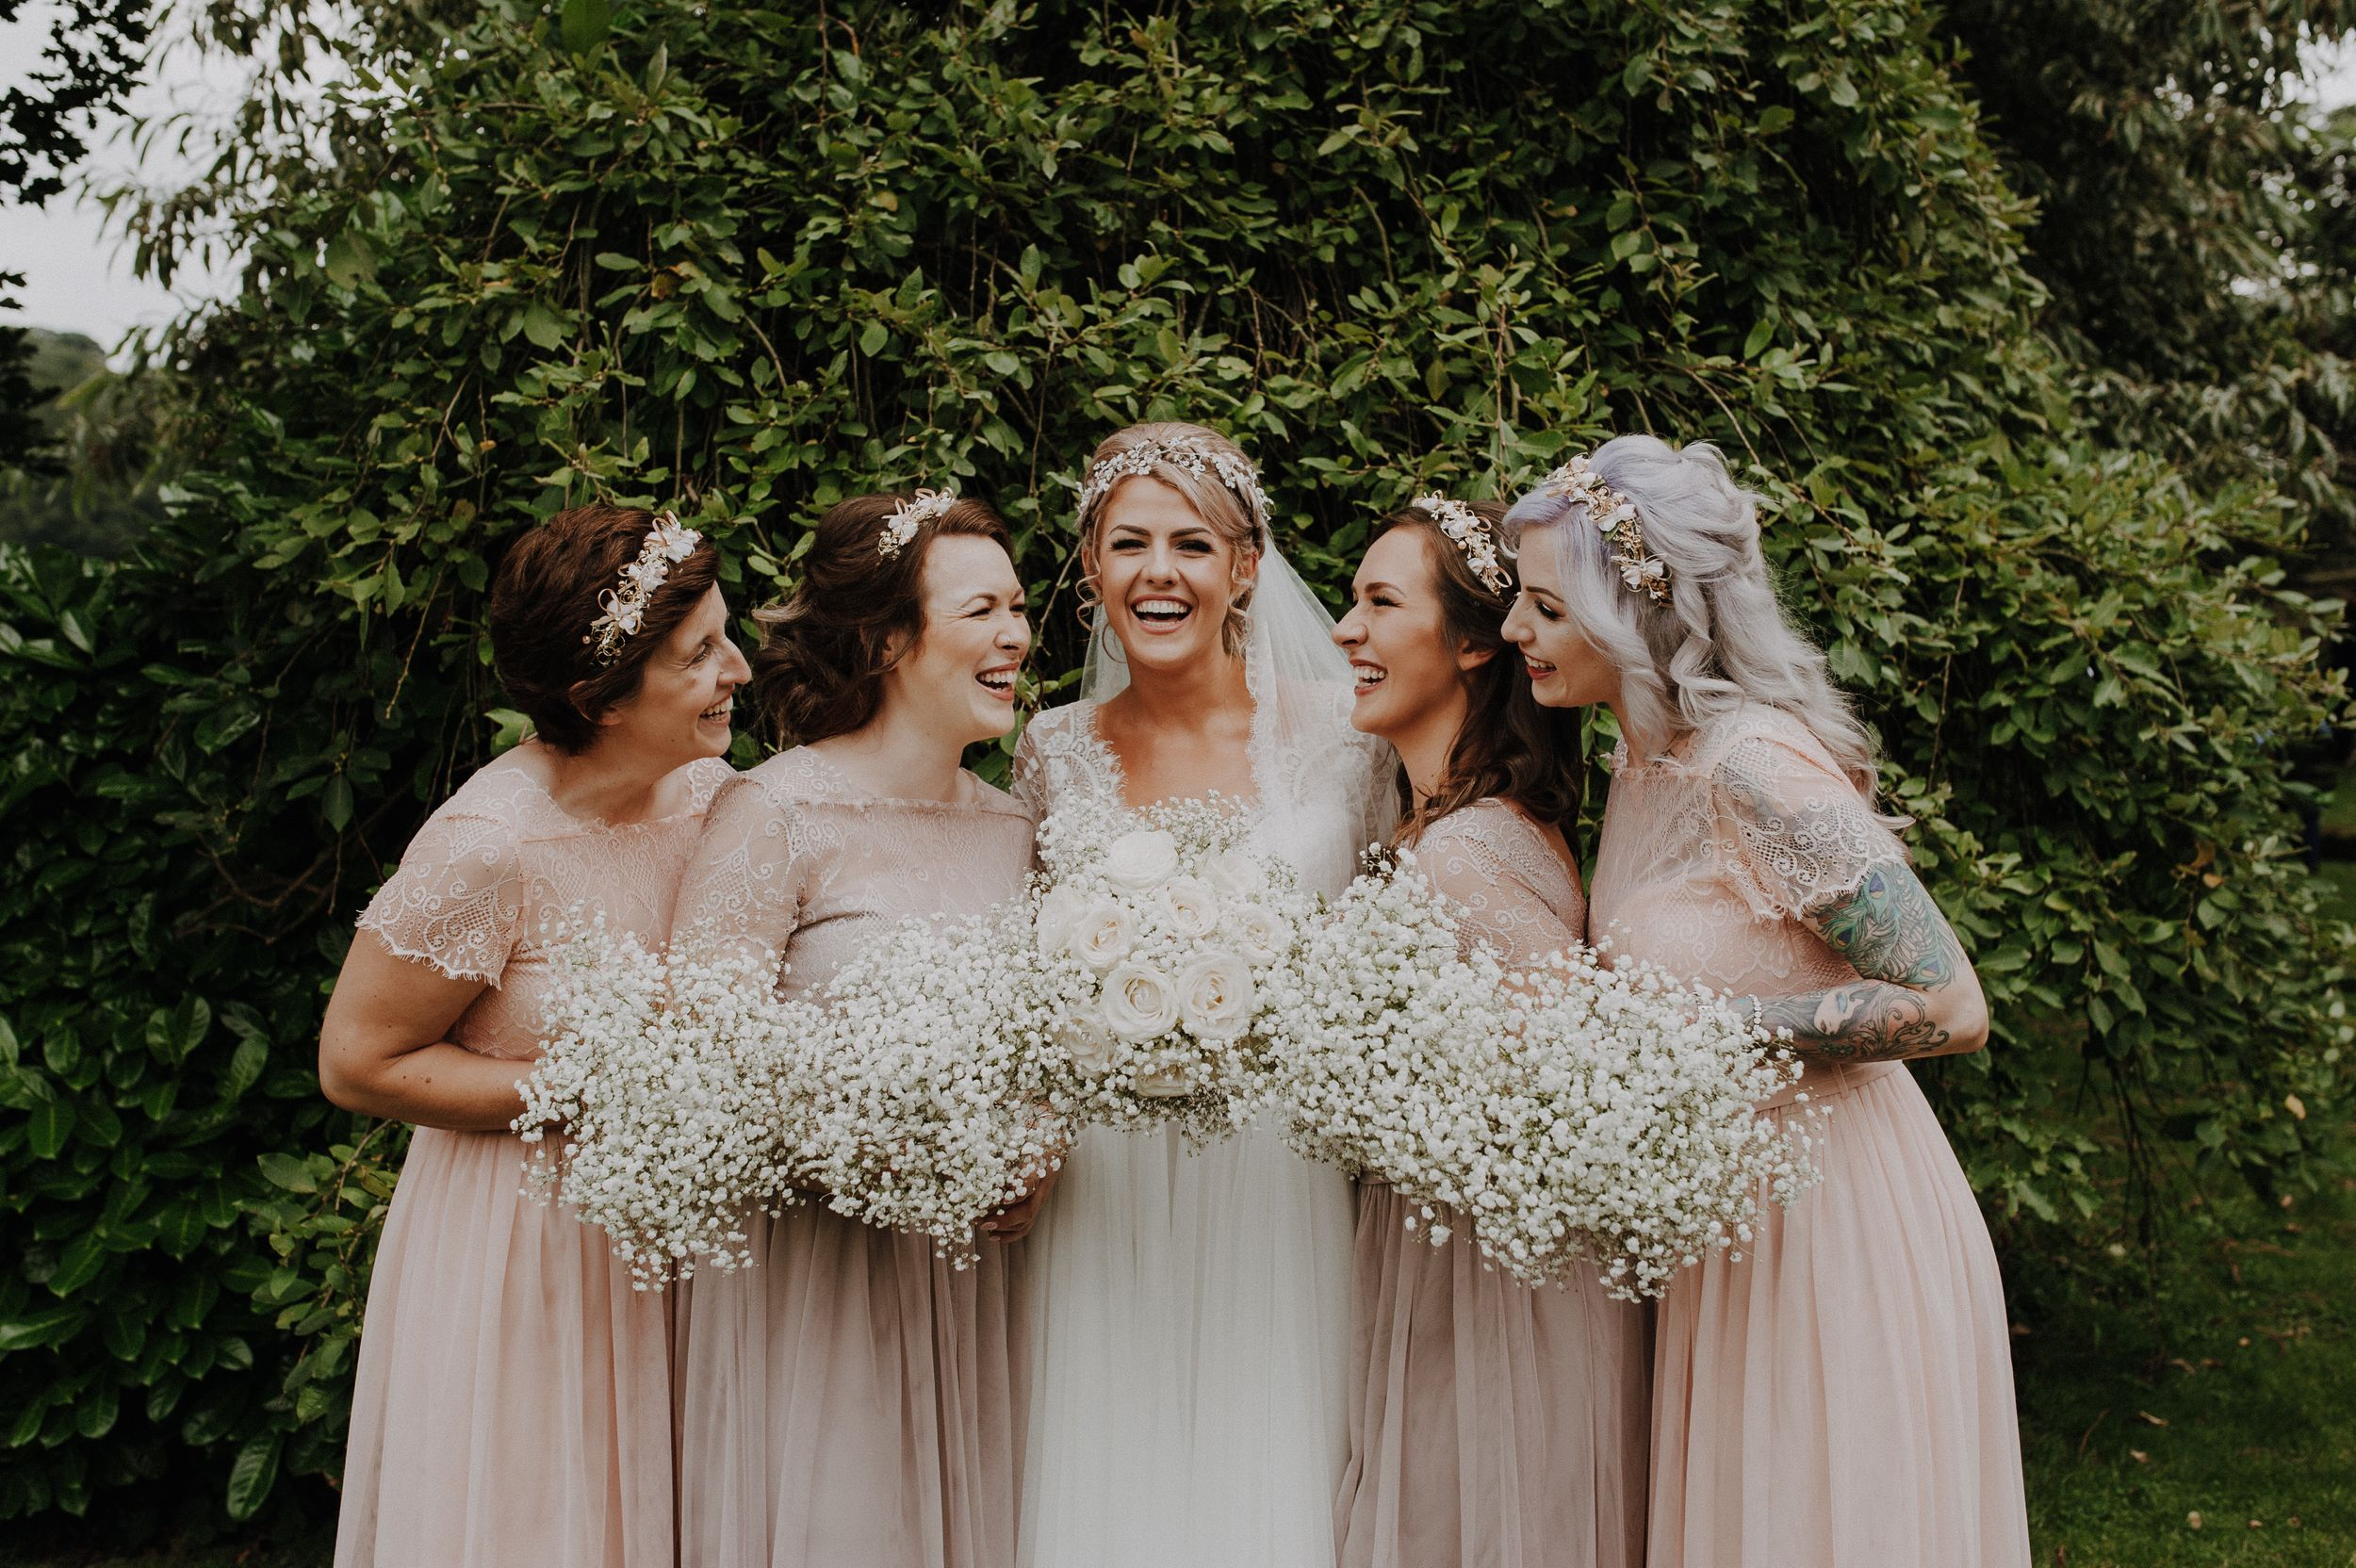 alcumlow barn wedding venue, bridesmaids